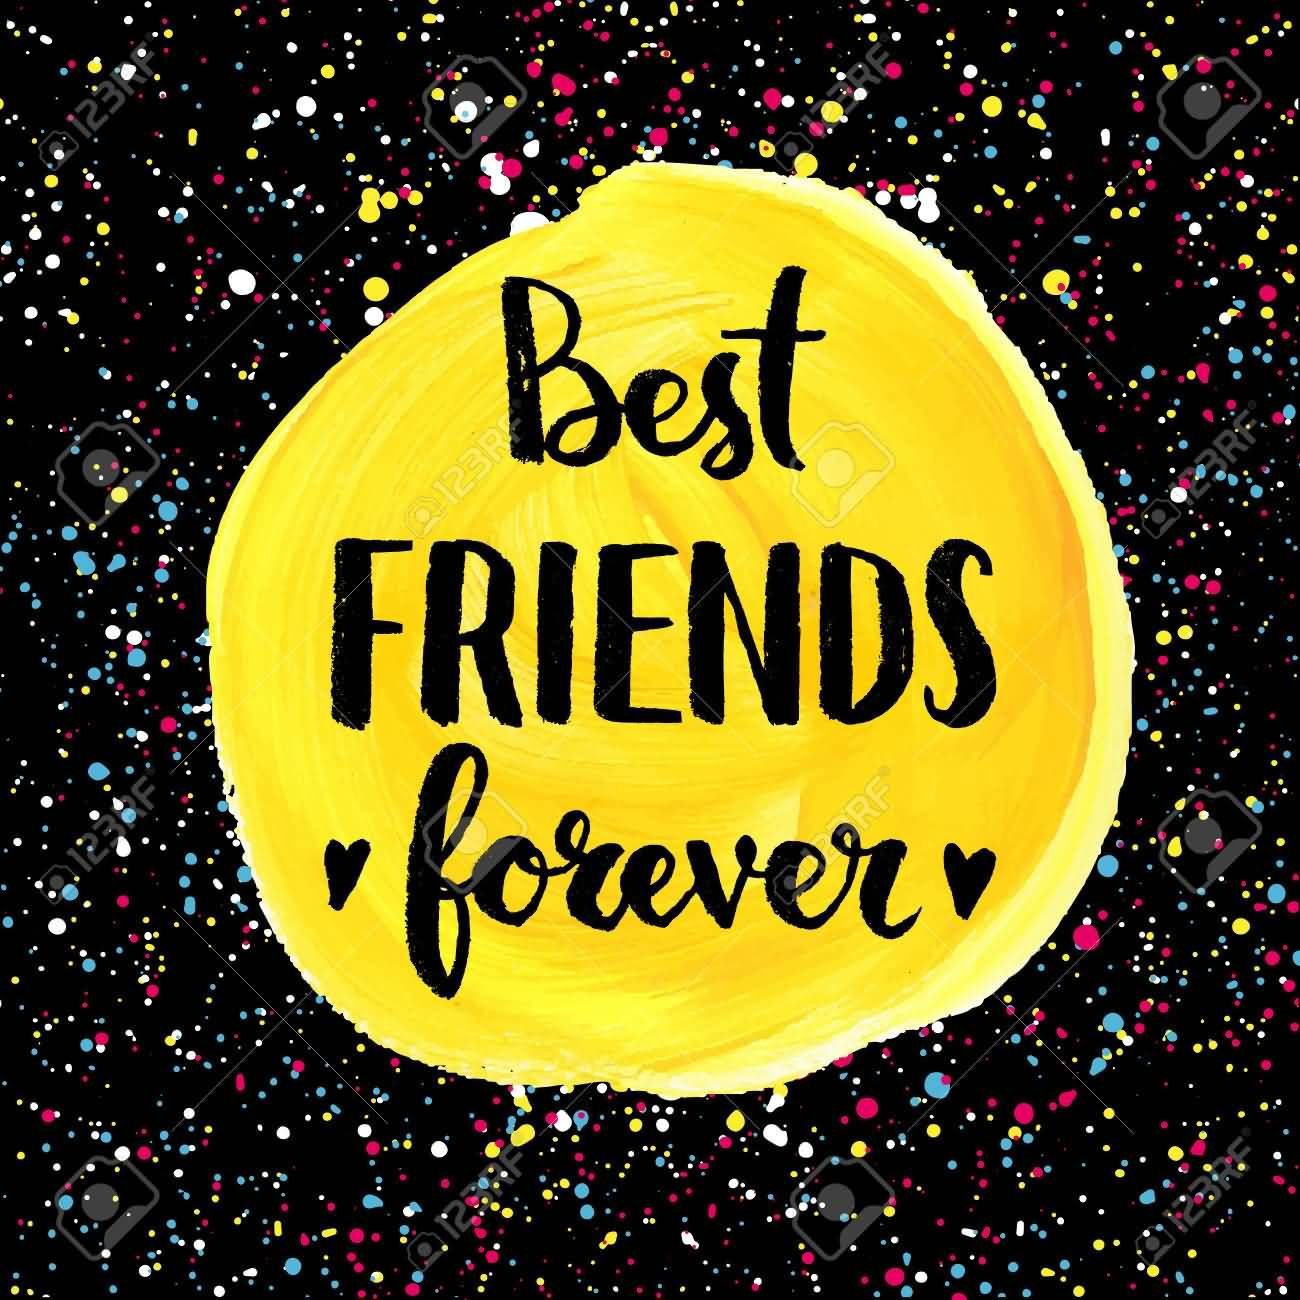 The Prettiest Soul Best Friends Forever Quotes Best Friend Images Friends Forever Pictures